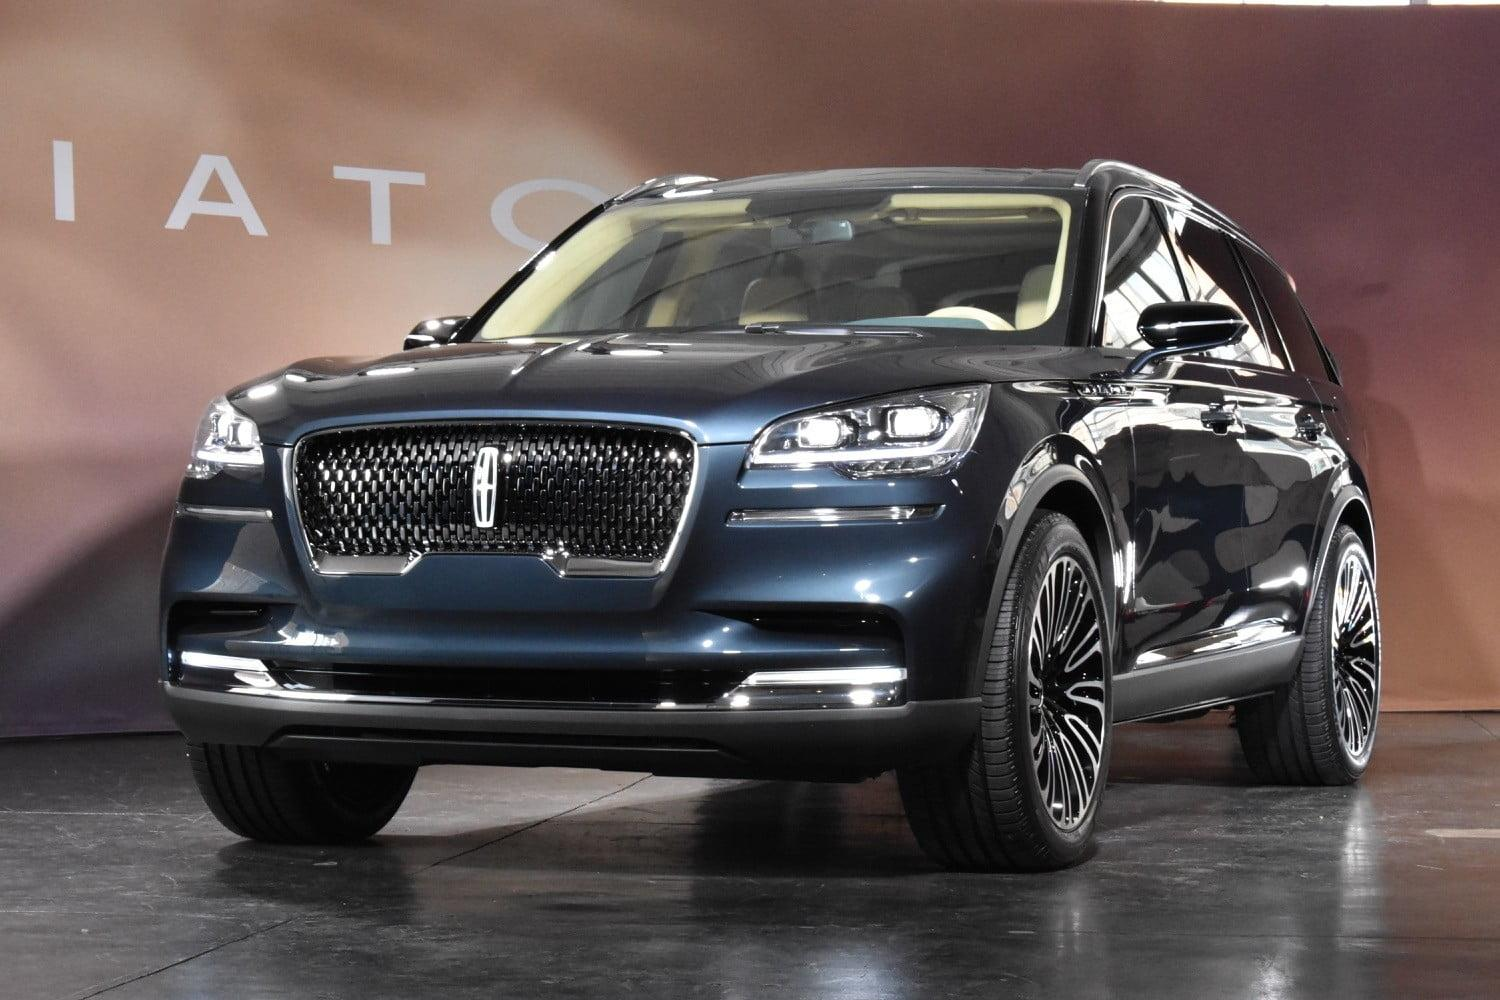 lincoln s aviator luxury suv makes its return as a stylish plug in hybrid. Black Bedroom Furniture Sets. Home Design Ideas